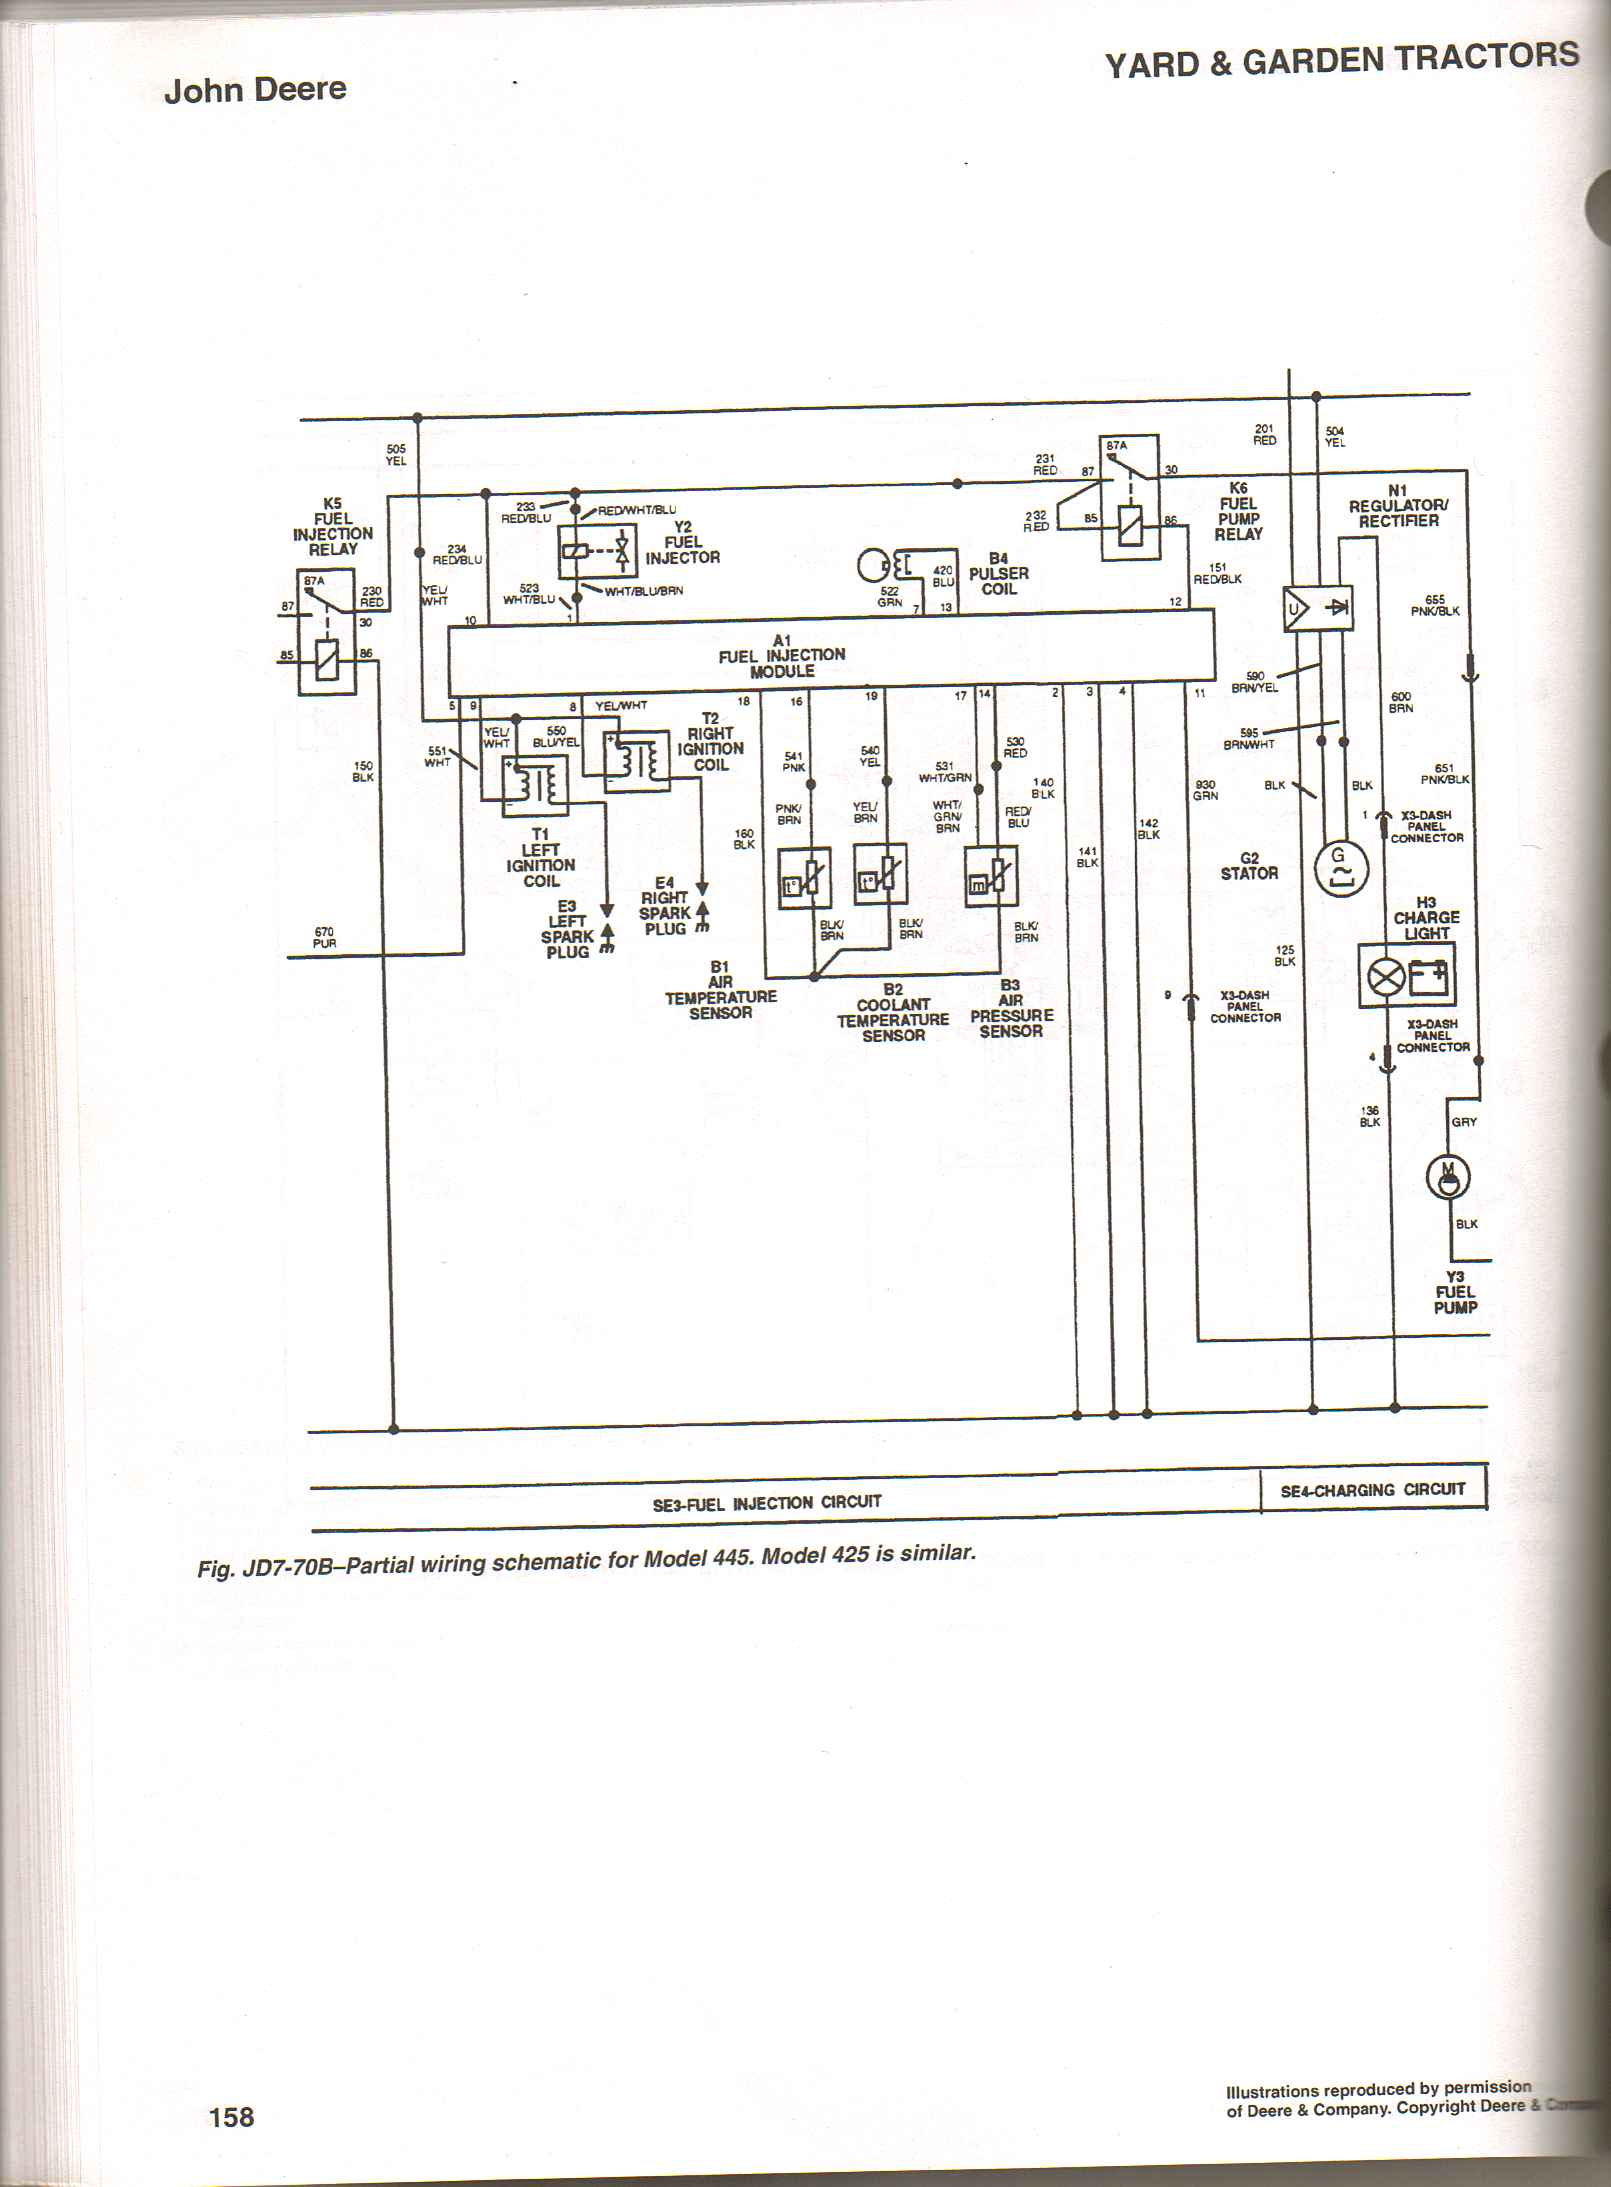 John Deere 300 Wiring Diagram moreover John Deere F525 Wiring Diagram besides John Deere X540 Parts Diagram Car Interior Design besides DIY Racing Simulator Cockpit Plans besides John Deere 345 Wiring Diagram. on x540 wiring diagram